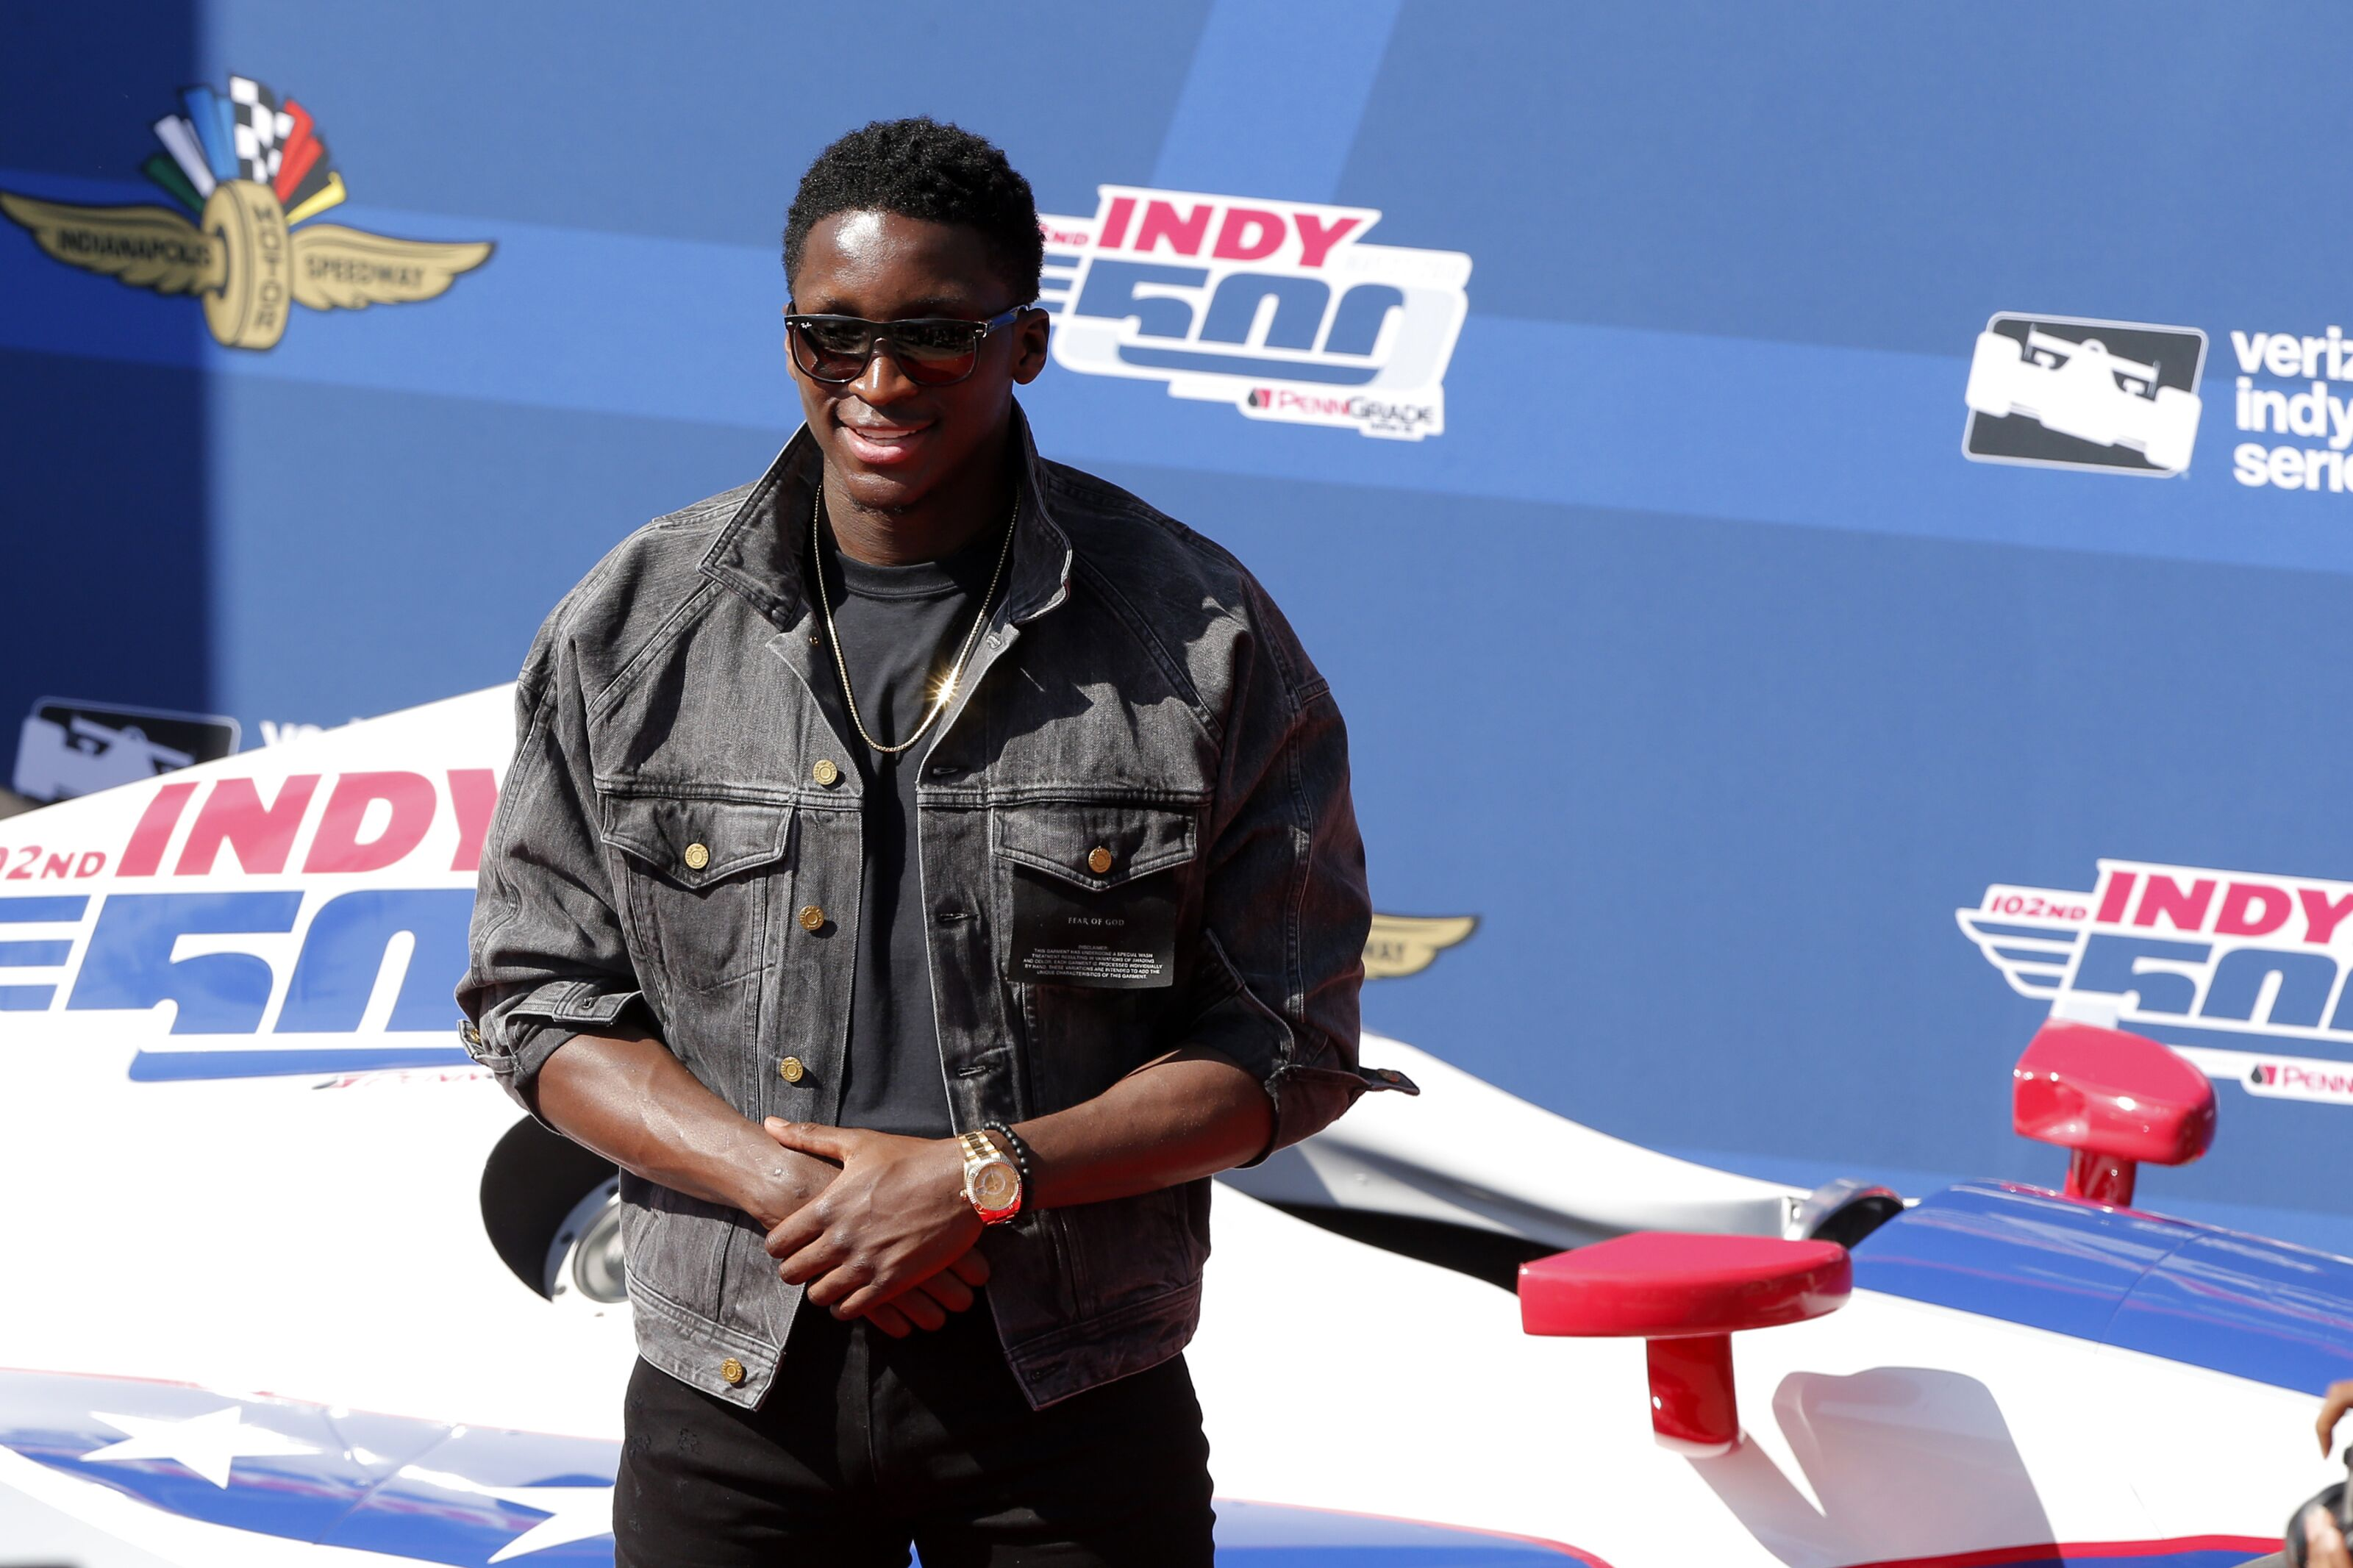 b1dec35245c Victor Oladipo and the Indiana Pacers make a pit stop at the Indy 500